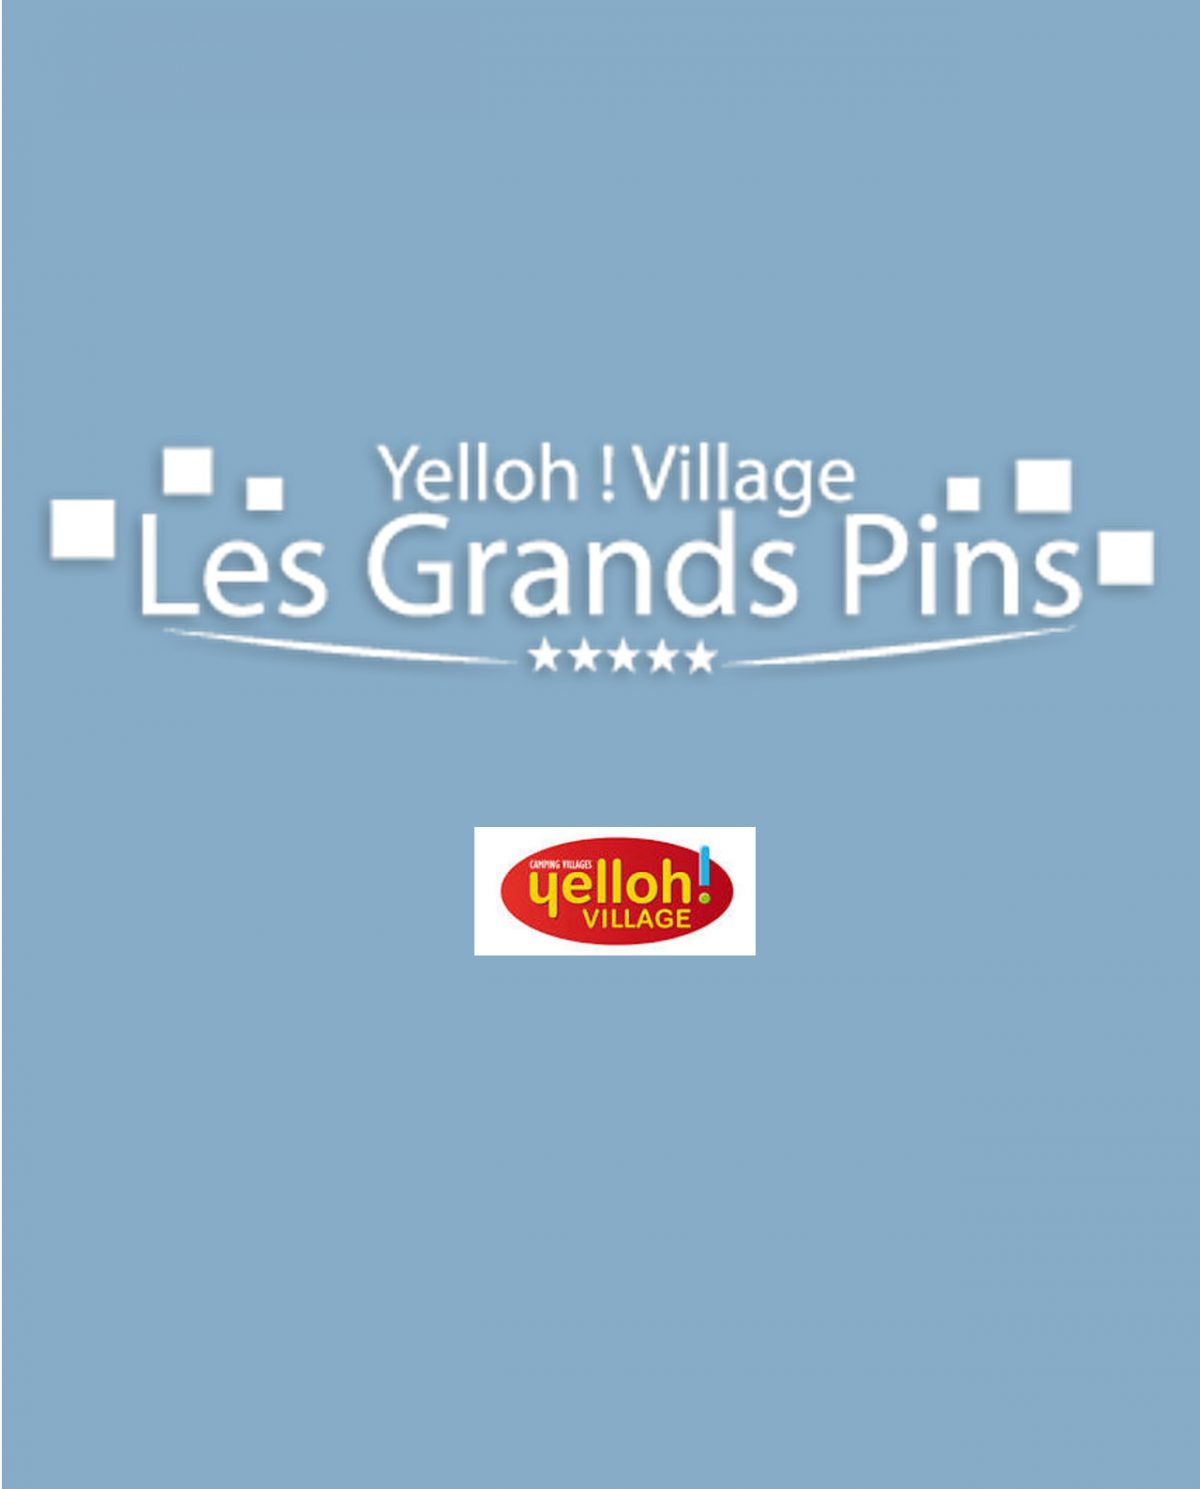 Yelloh village les grands pins lacanau